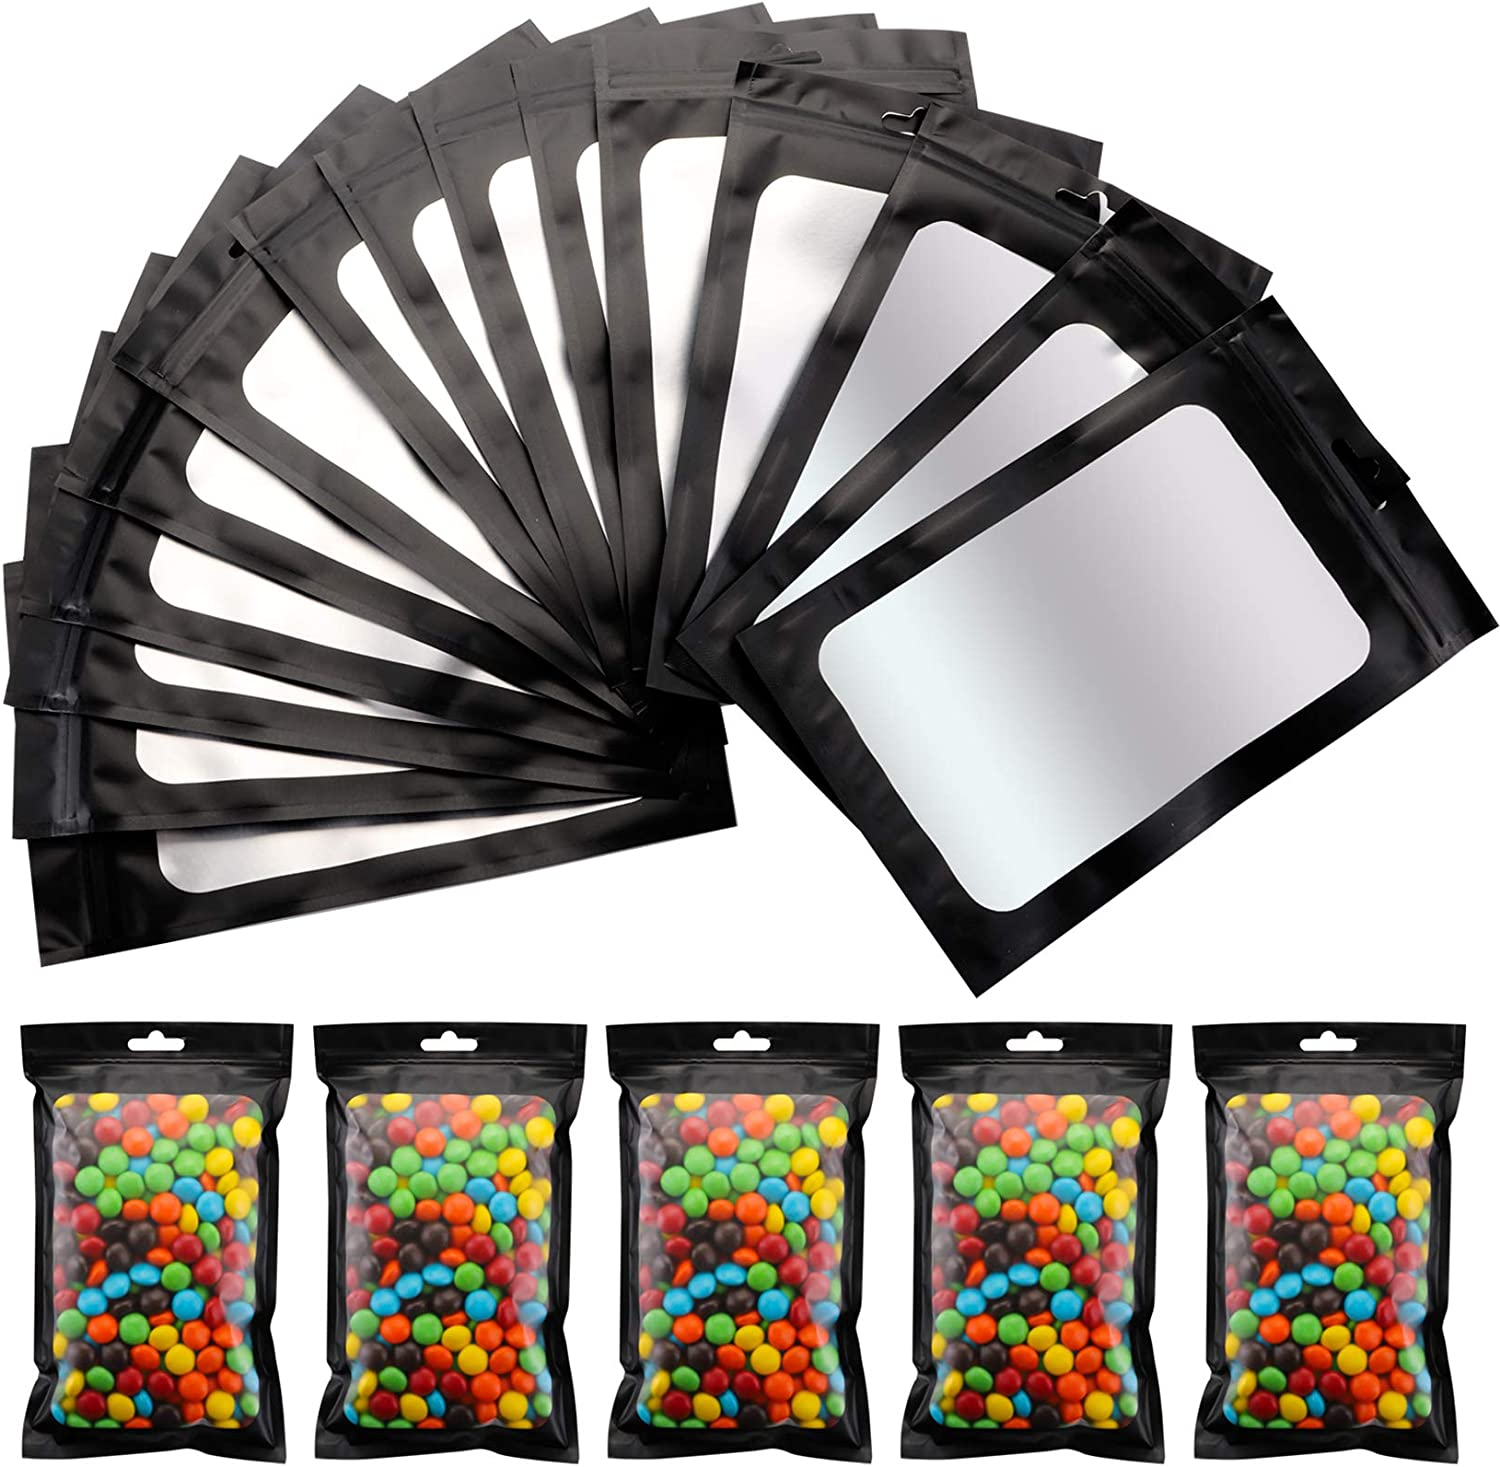 Yesland 200 Pcs Resealable Mylar Ziplock Food Storage Bags with Clear Window, Black 4.75 × 7.8 Inches Food Self Sealing Storage & Pouch Bag with Ziplock for Coffee Beans Candy Nuts Soap Sample